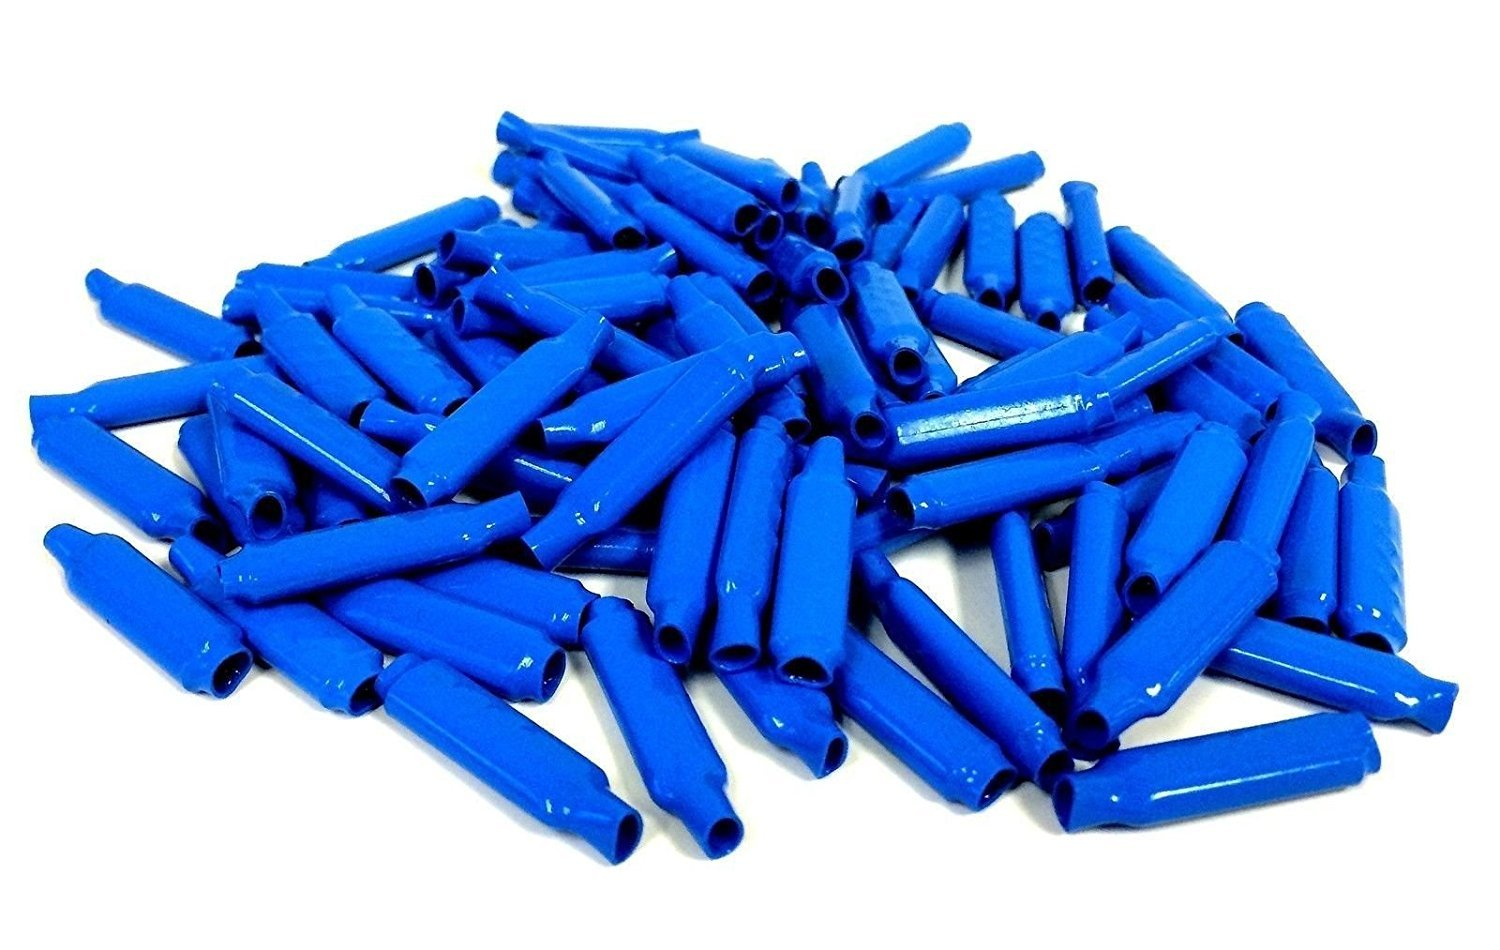 Muttiy B Connectors Silicone Filled Wet B Gel Wire Connectors Wire Crimp Bean Type Splice for Low Voltage, Blue(100Pcs)